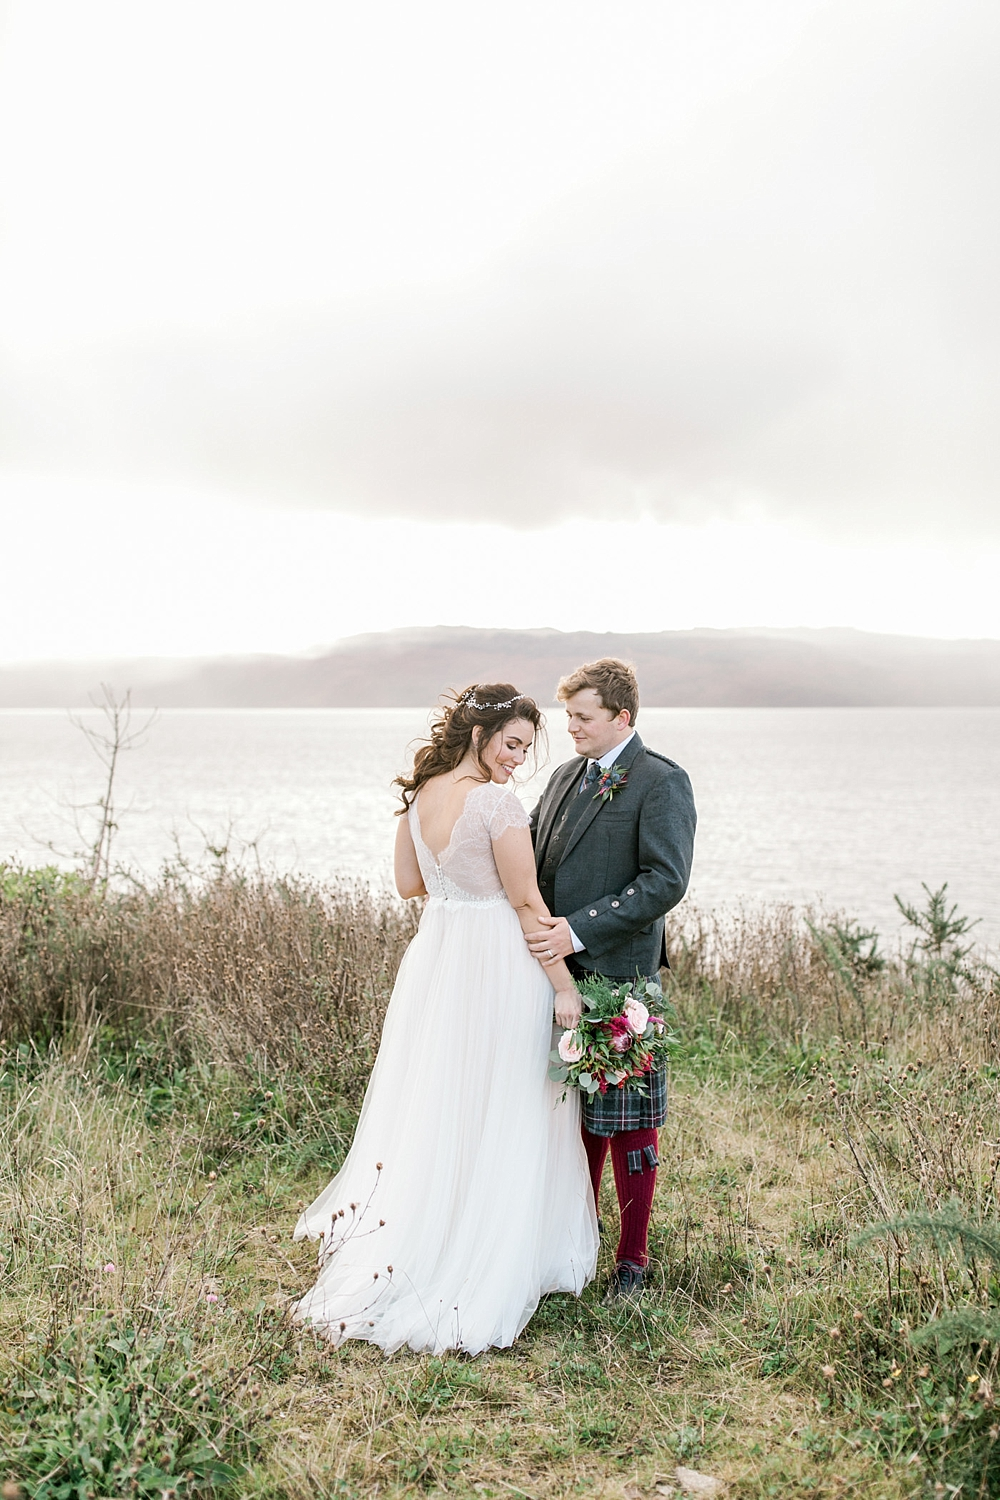 Scotland romantic fine art wedding photography 0106.jpg